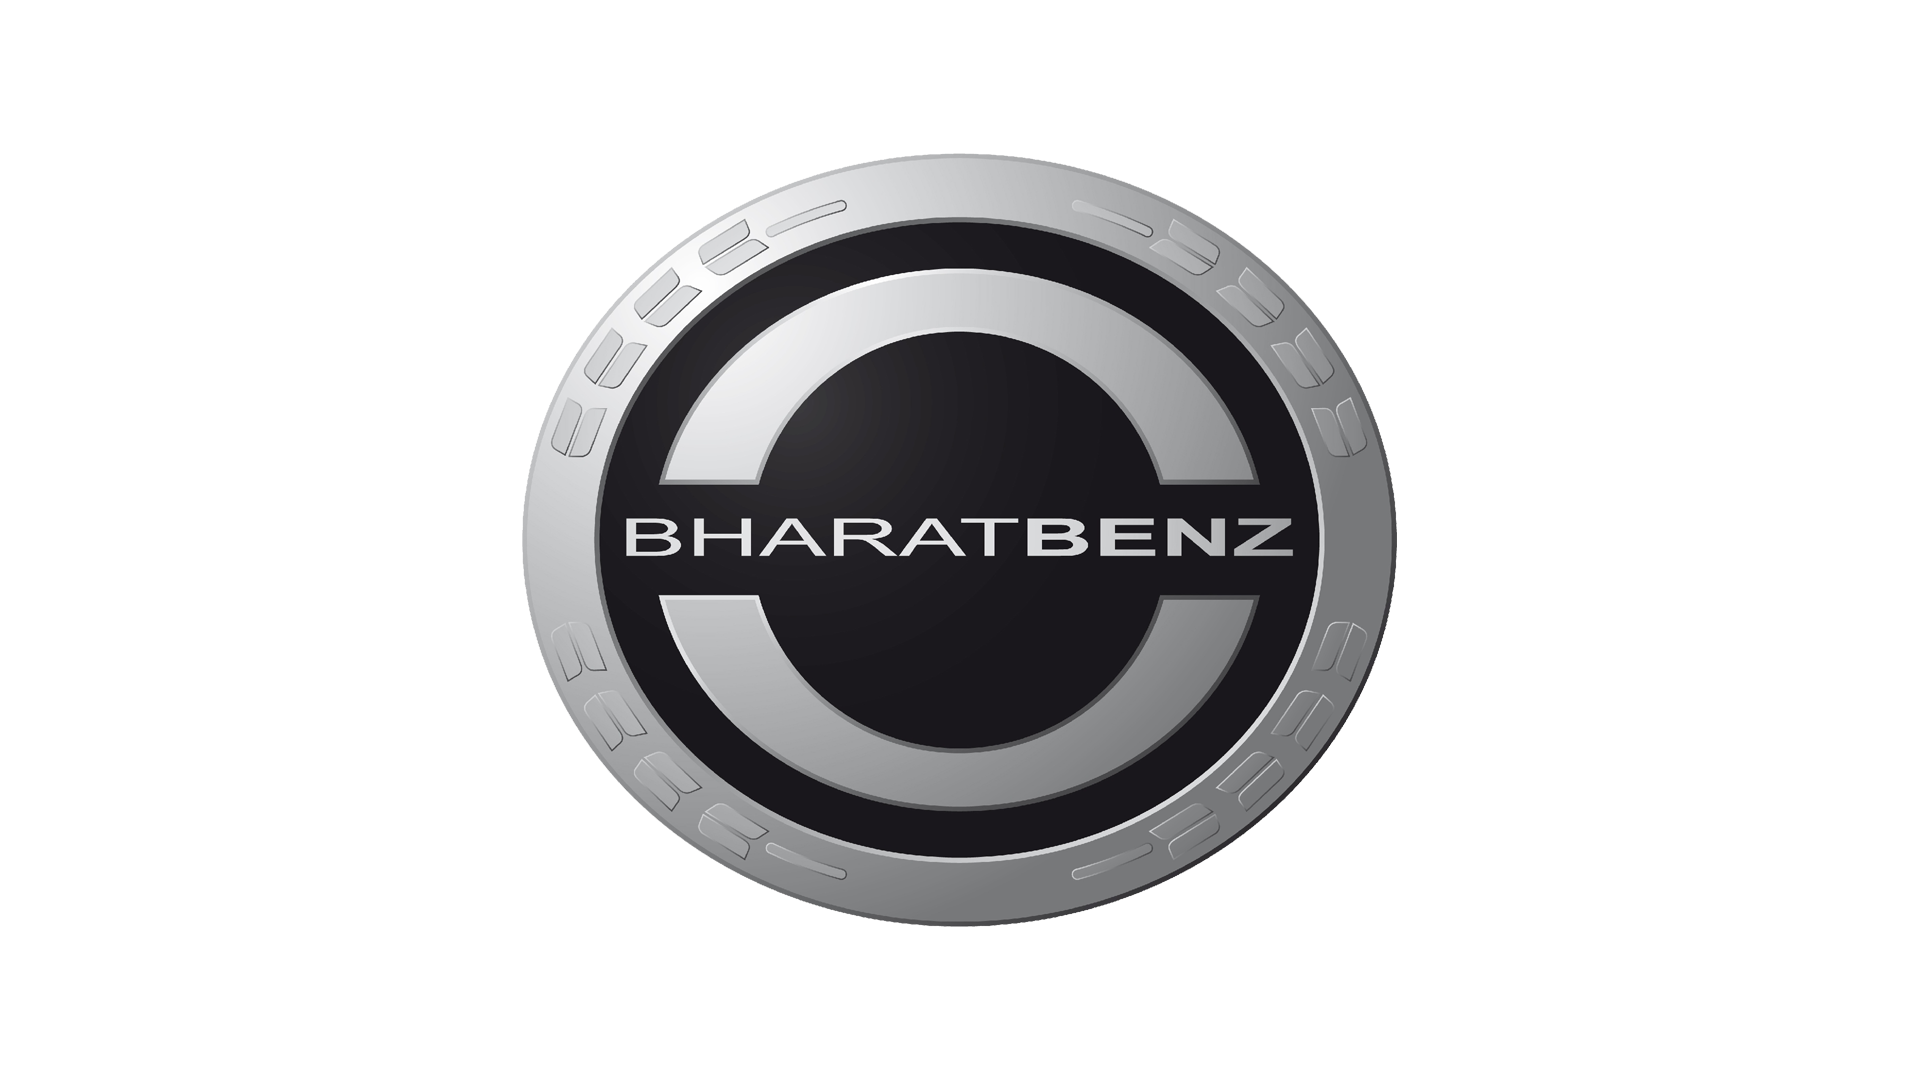 Car Brand Name With Logo >> BharatBenz Logo, HD, Png, Meaning, Information   Carlogos.org